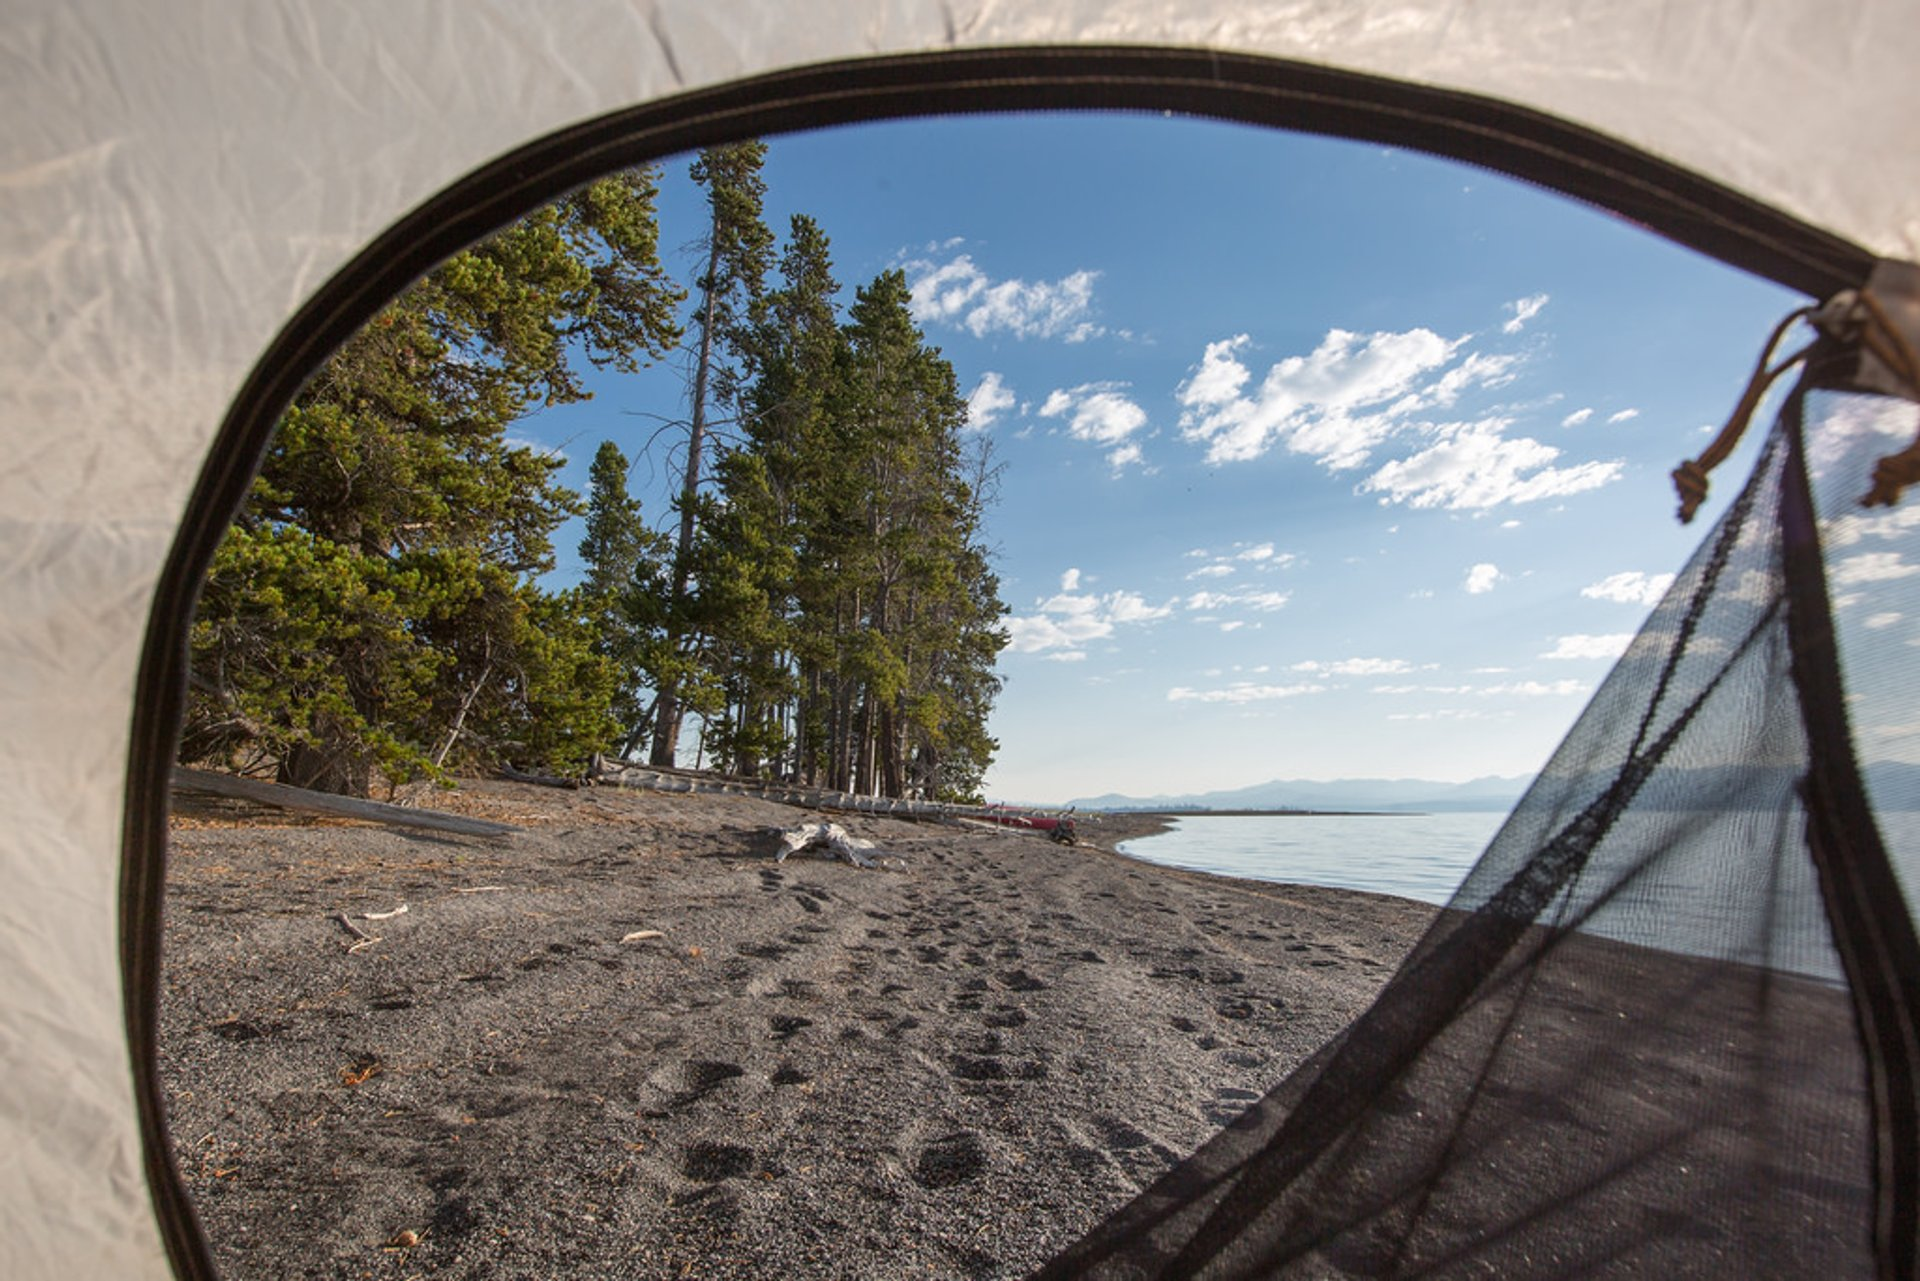 Waking up on the shore of Yellowstone Lake